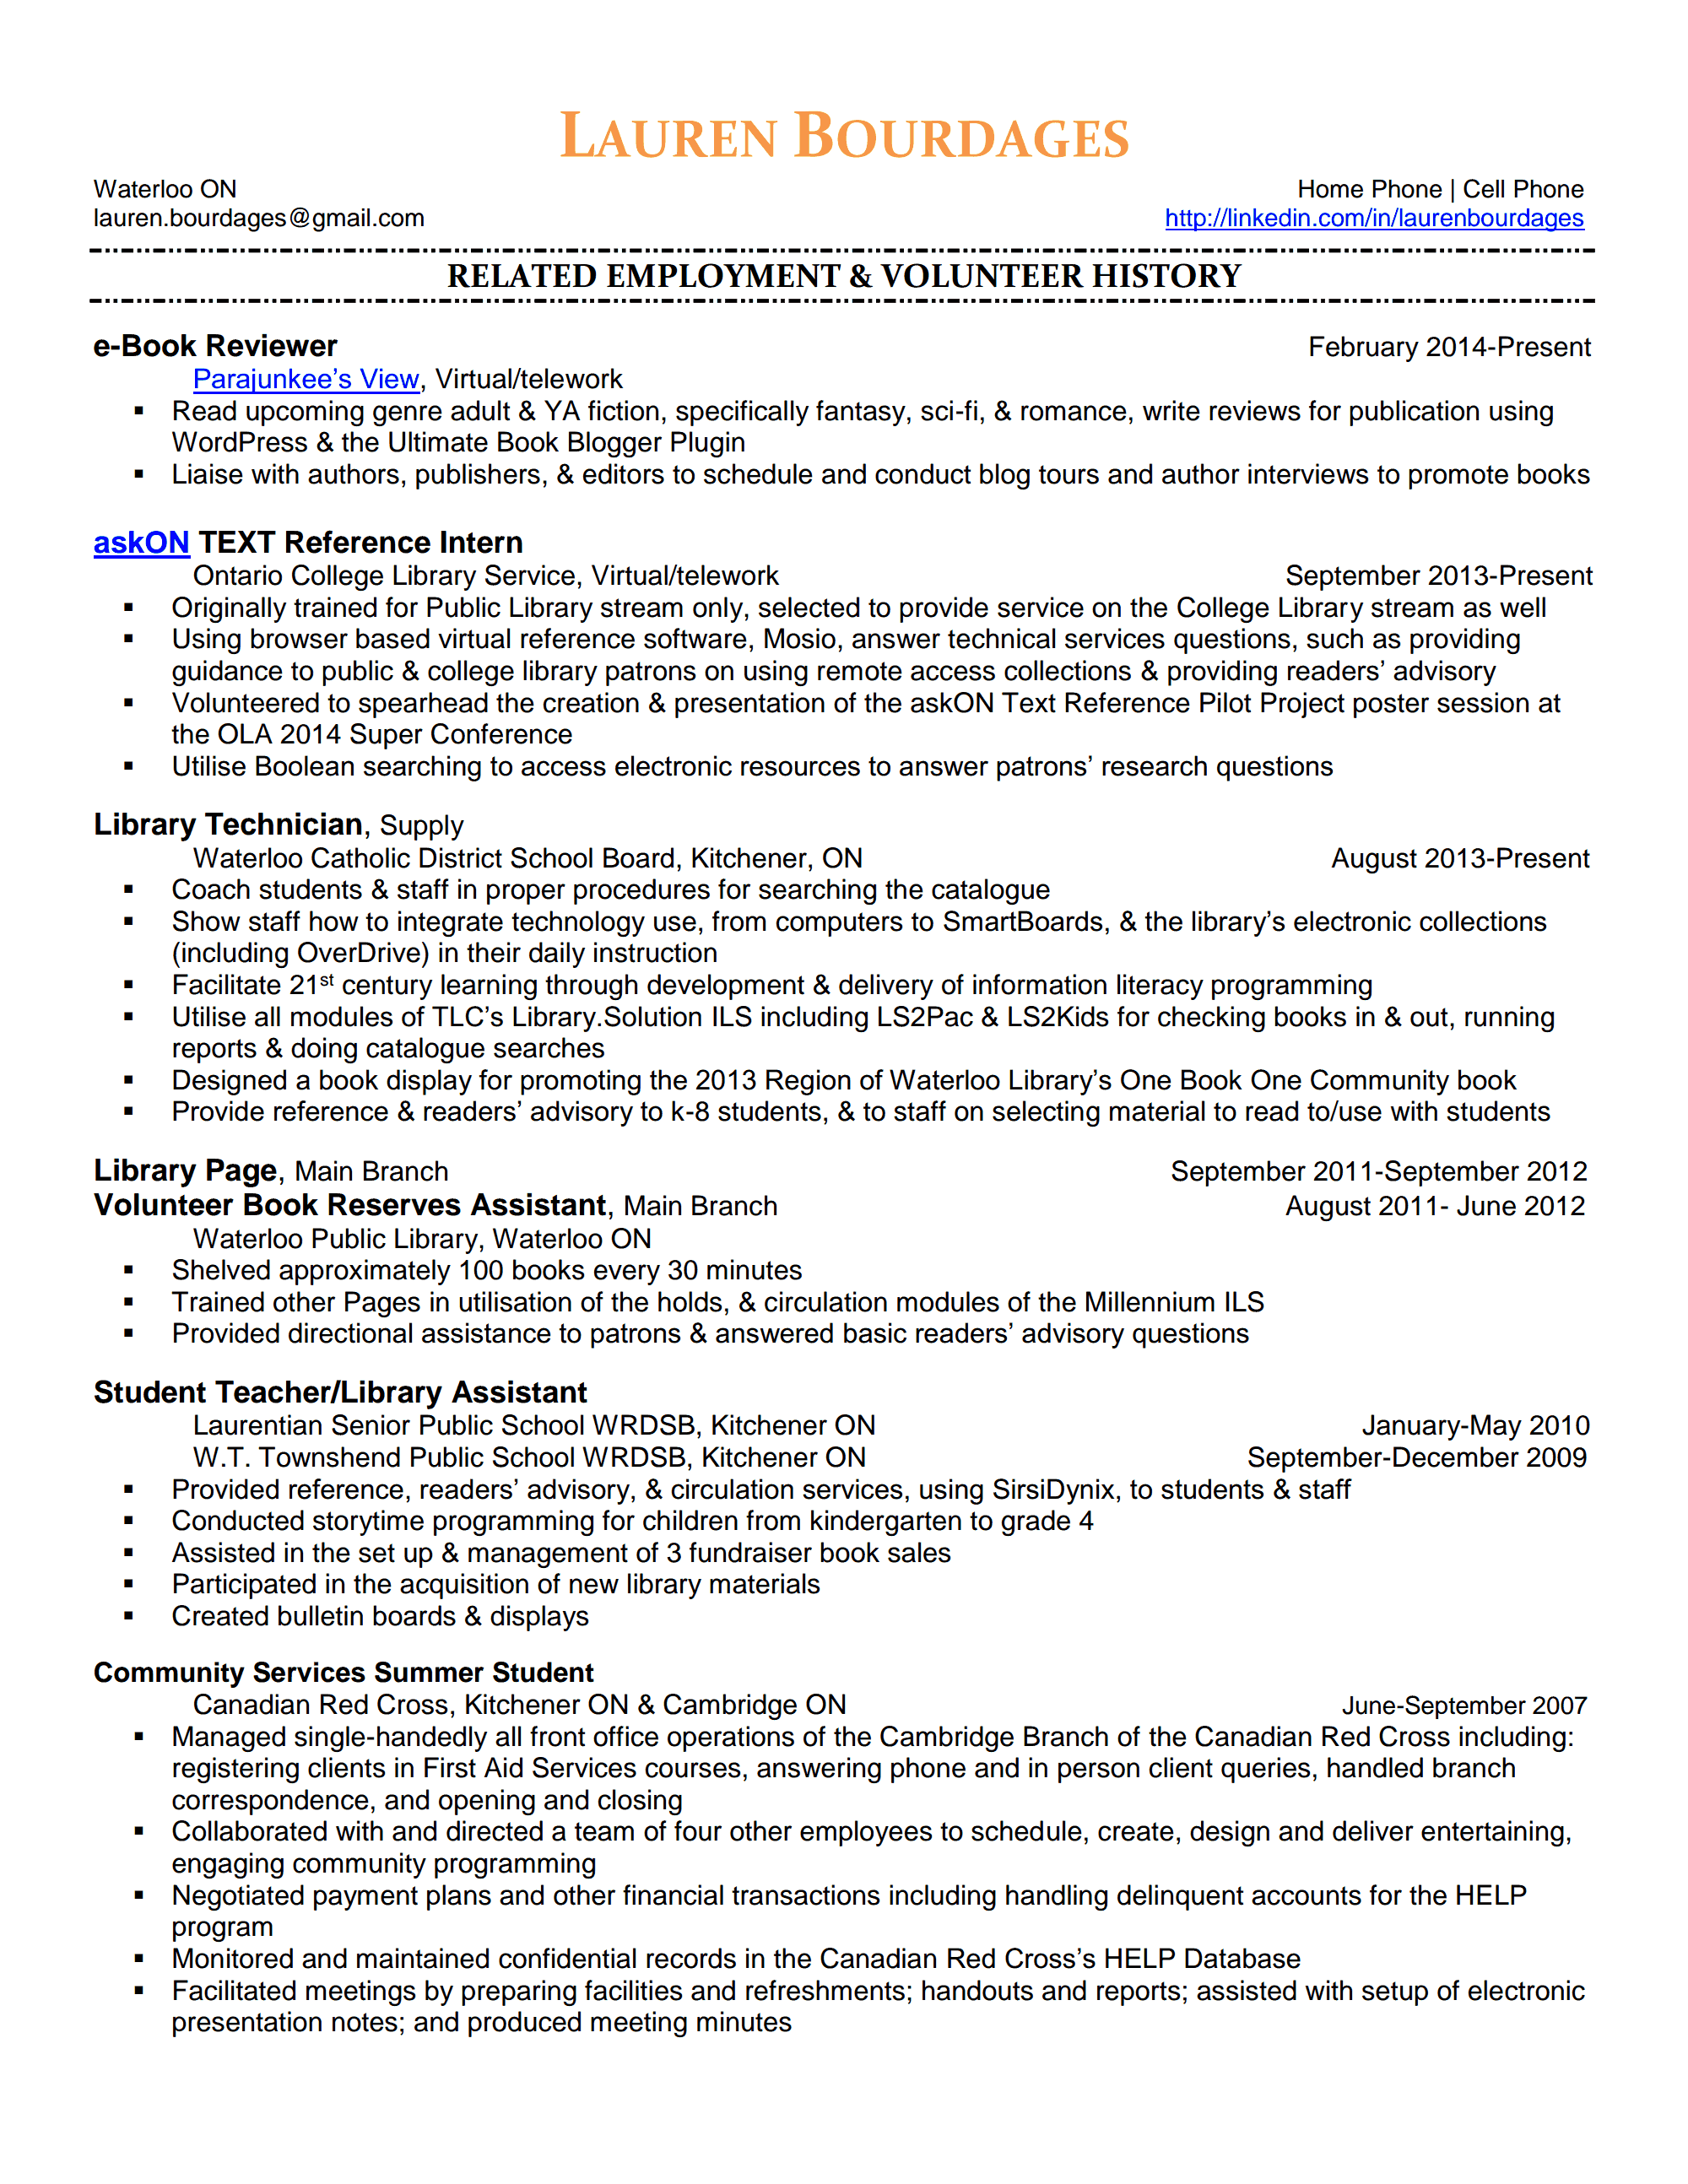 Free Resume Samples, Cover Letter Samples And Tips.  Personal Resume Examples